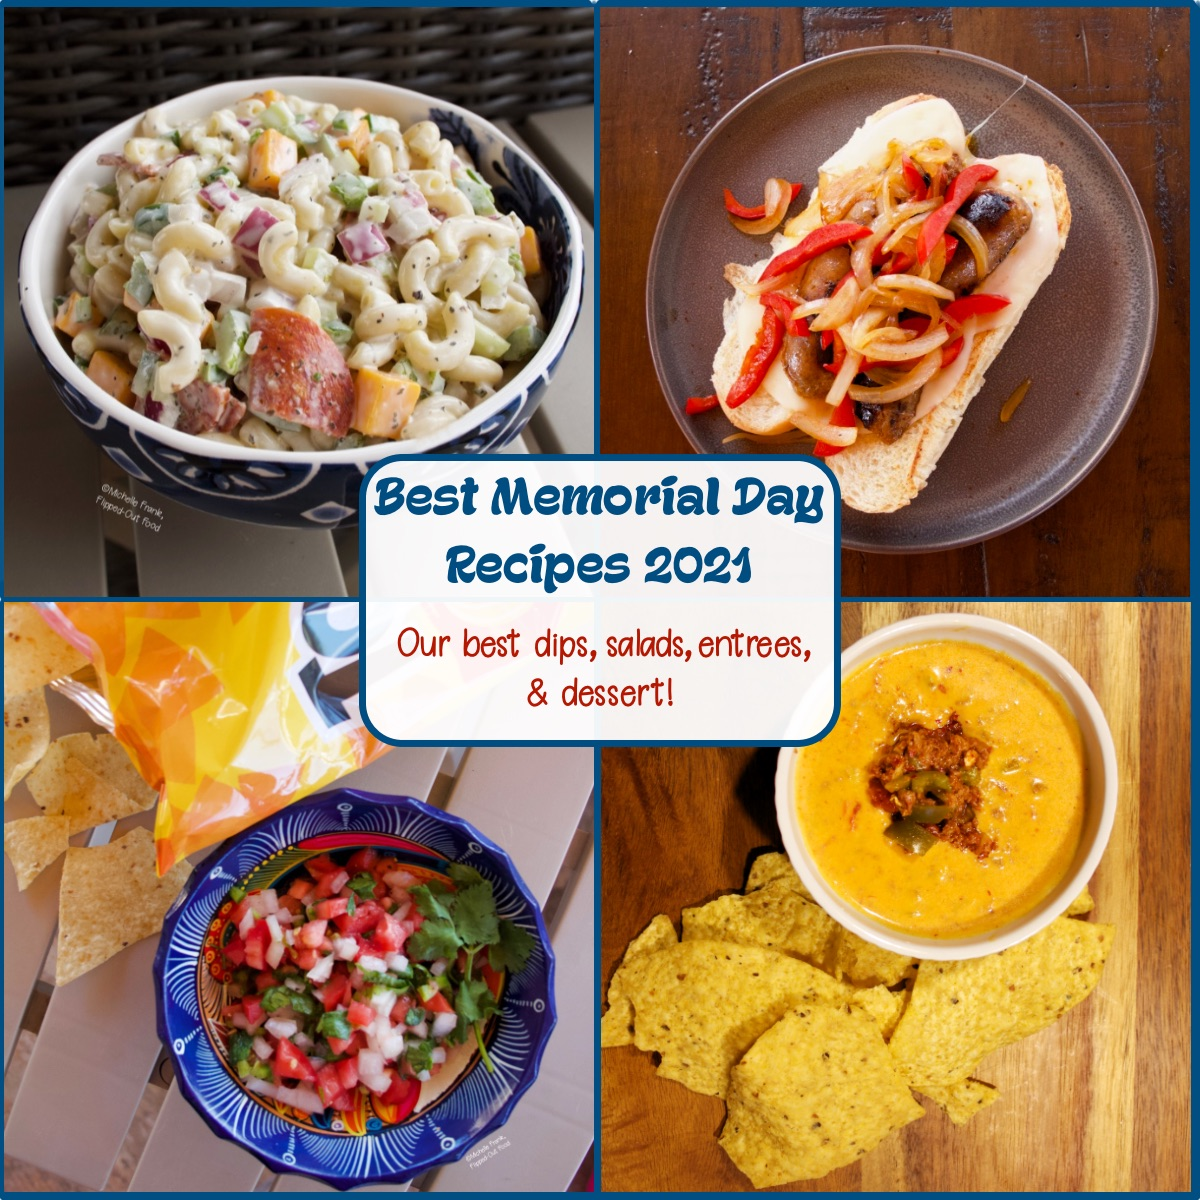 Best Memorial Day Recipes collage, showing (clockwise from top left): Creamy Pasta Salad, Italian Sausage Sandwiches with Pepper-Onion Foil Packs, Feisty Chile con Queso Dip, and Pico de Gallo.